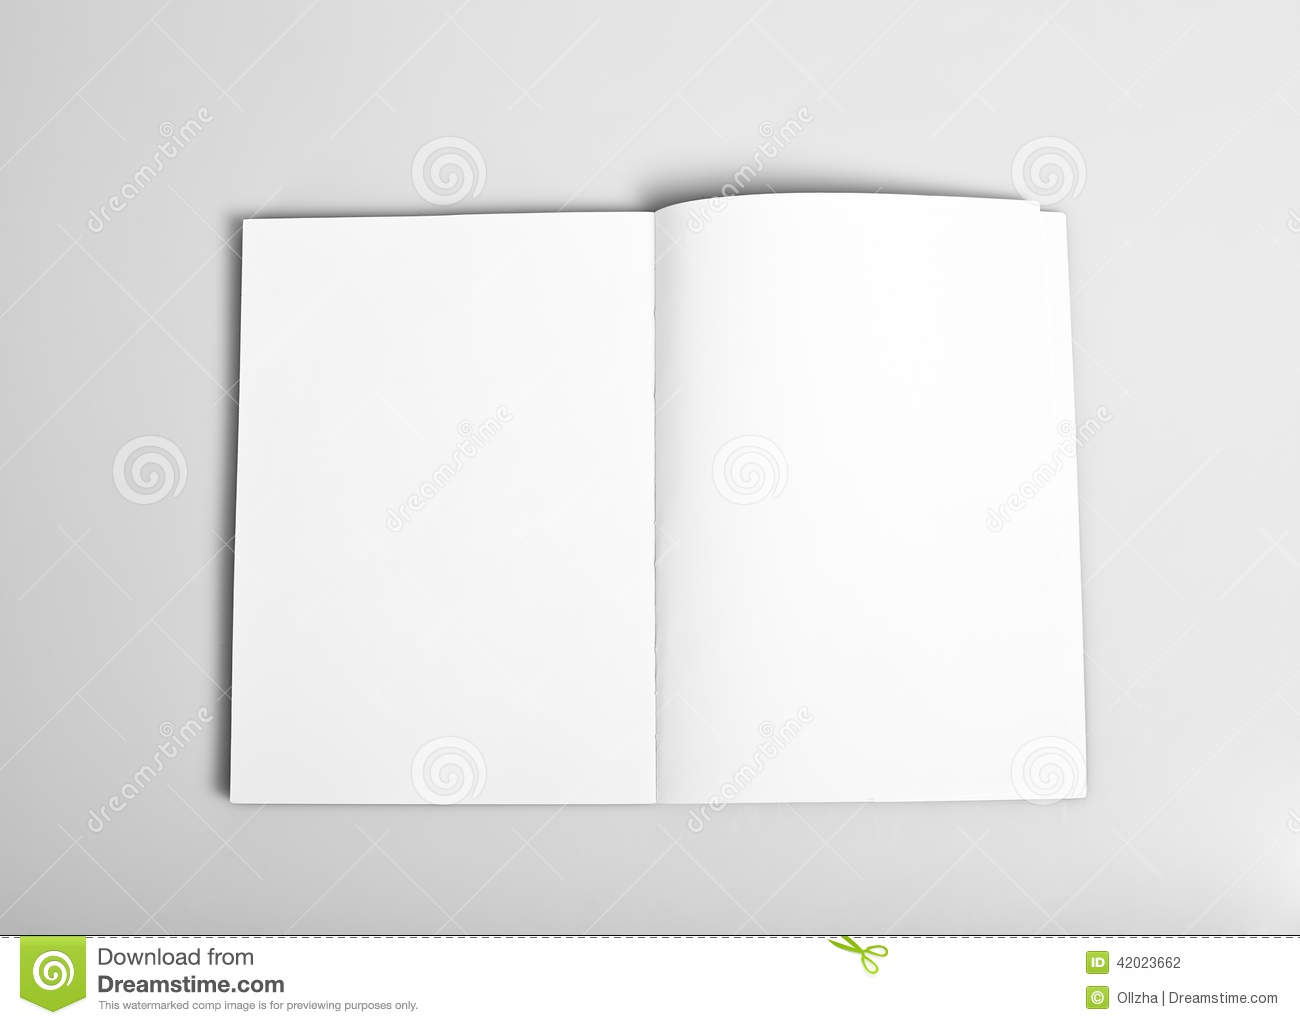 Blank pages to color on - Open Magazine With Blank Pages Stock Photography